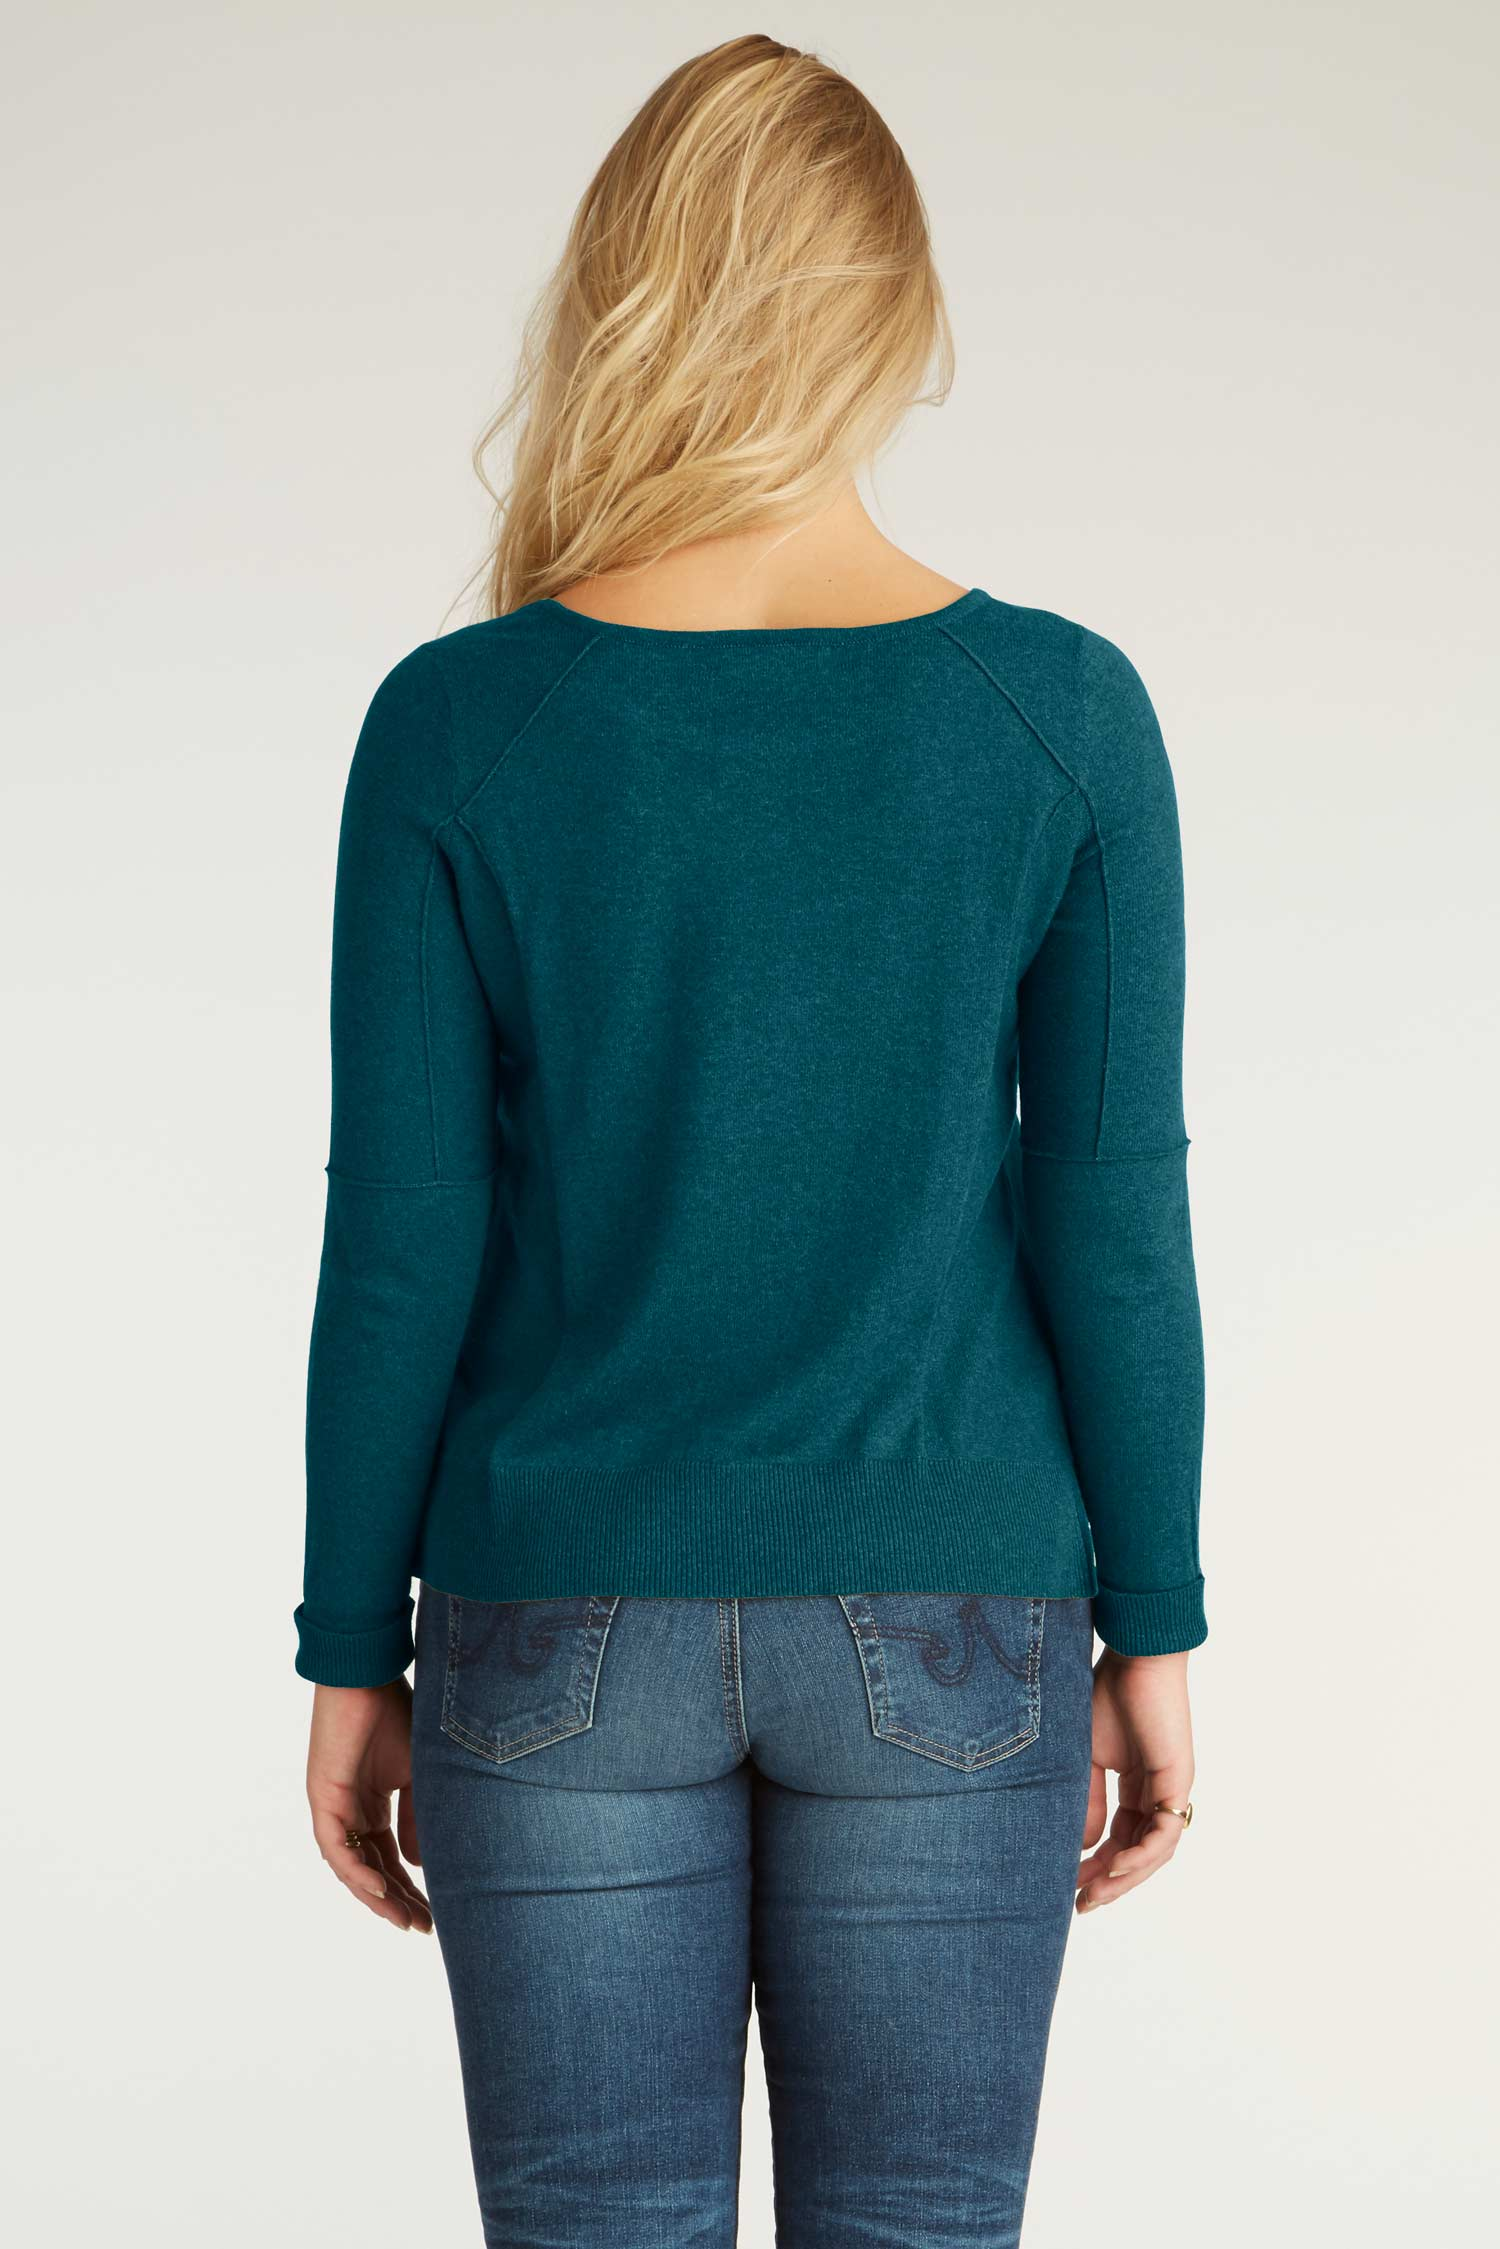 Womens Organic Cotton Sweater - Cropped Knit Pullover - Water Blue - Indigenous